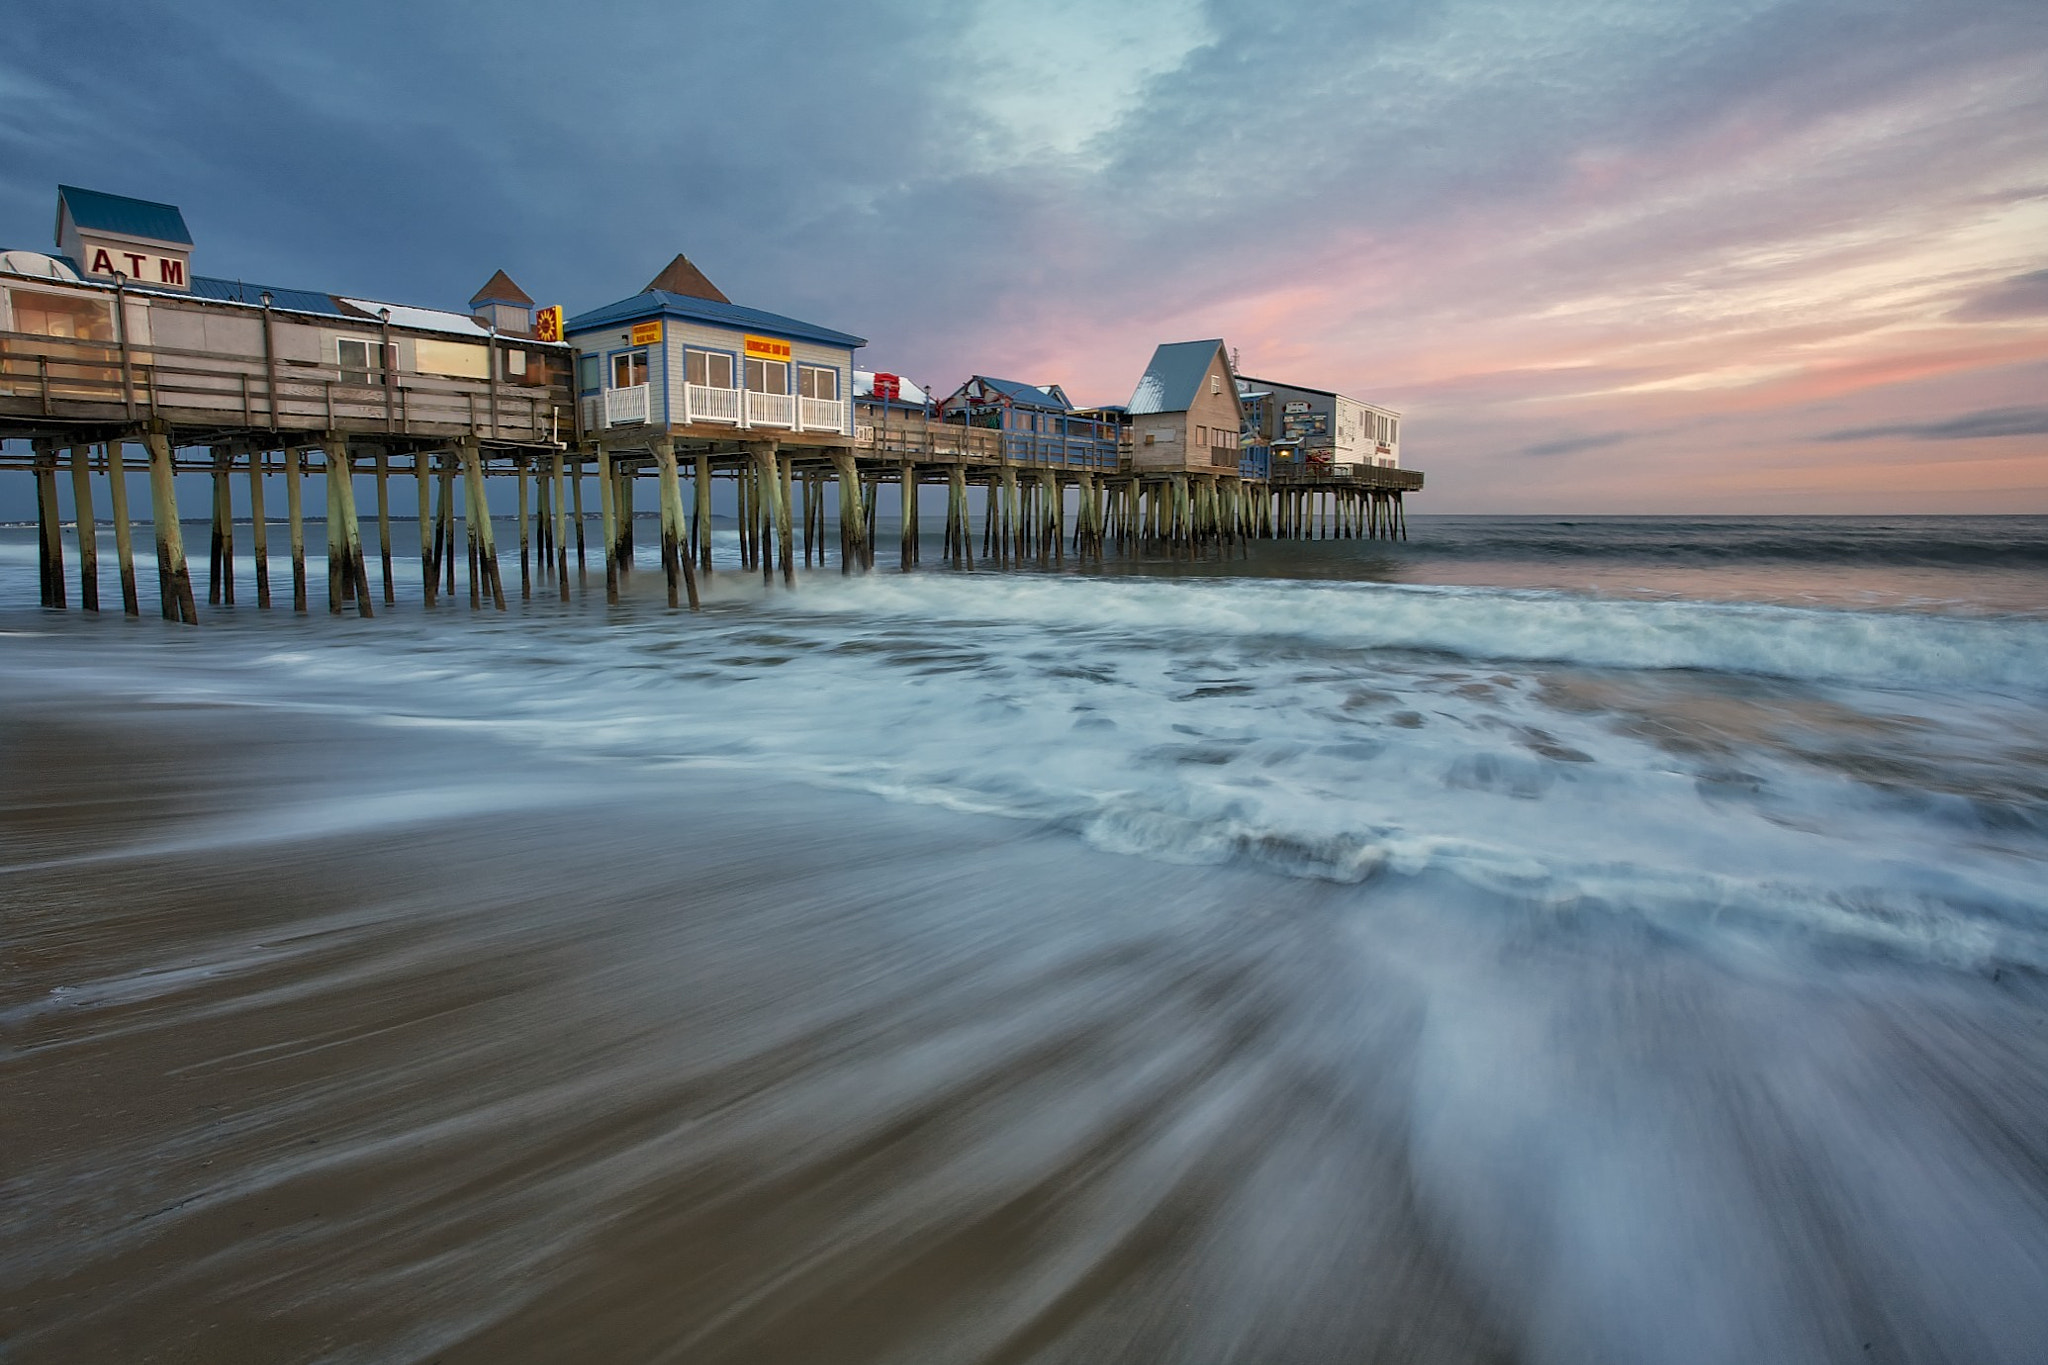 Photograph The pier at Old Orchard Beach by Don Seymour on 500px